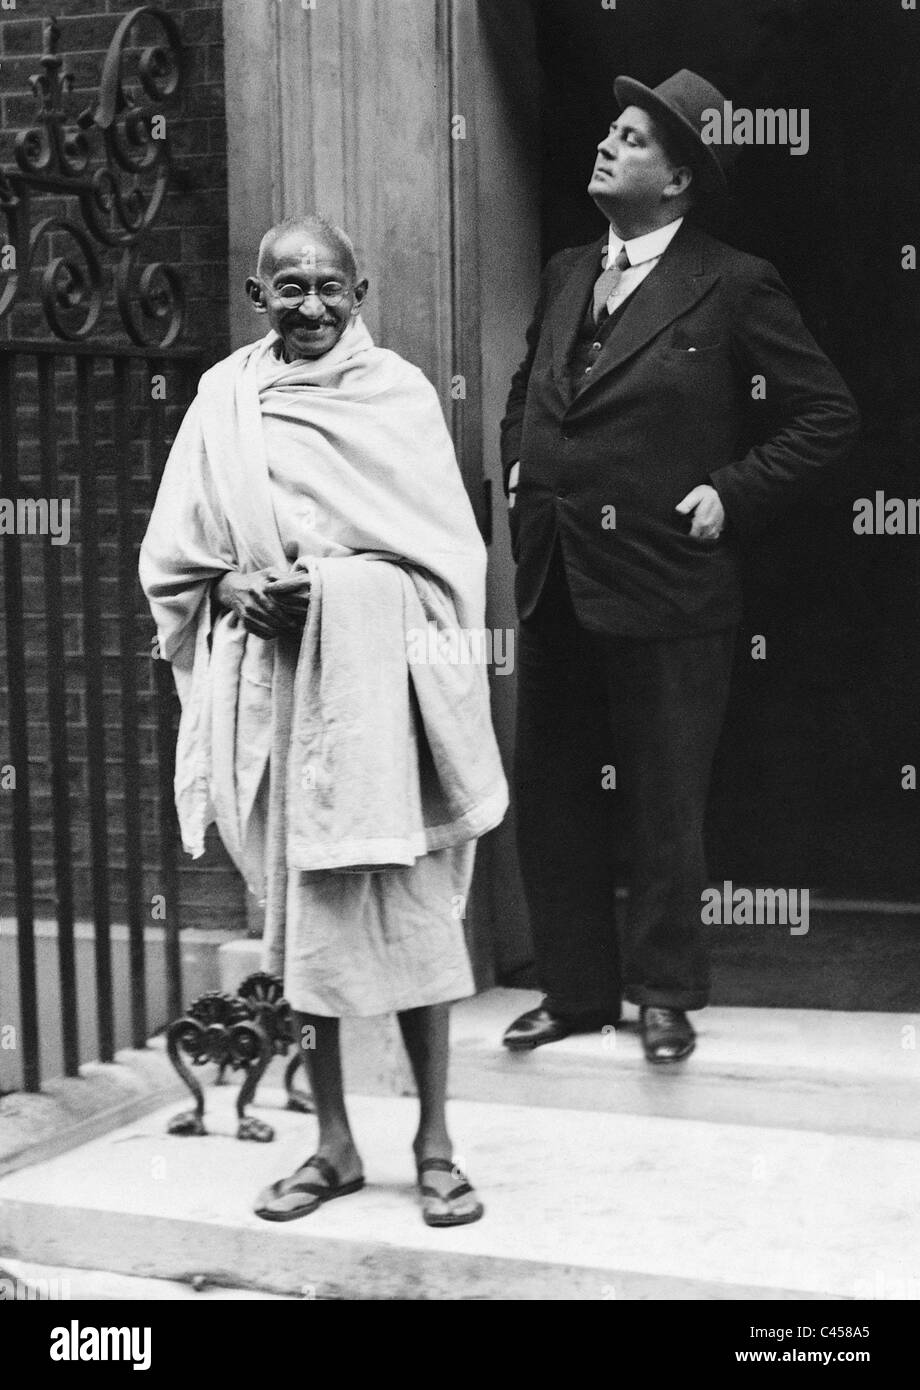 Mahatma Gandhi in front of 10 Downing Street, 1931 - Stock Image